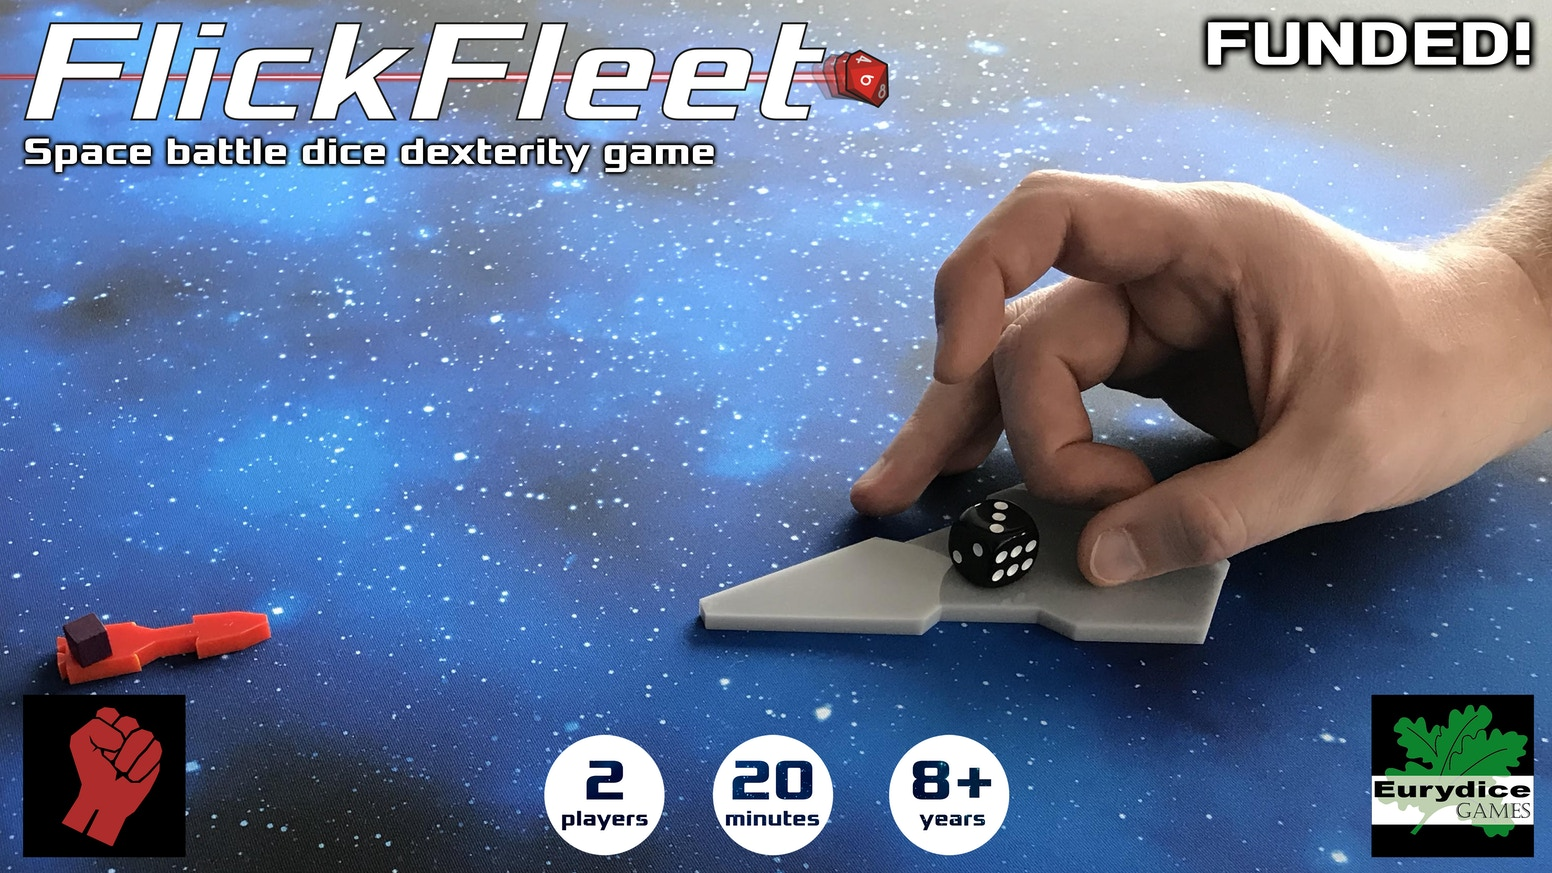 A reprint and a scenario pack for FlickFleet the space battle dexterity game where you flick your ships to move and flick dice to fire.